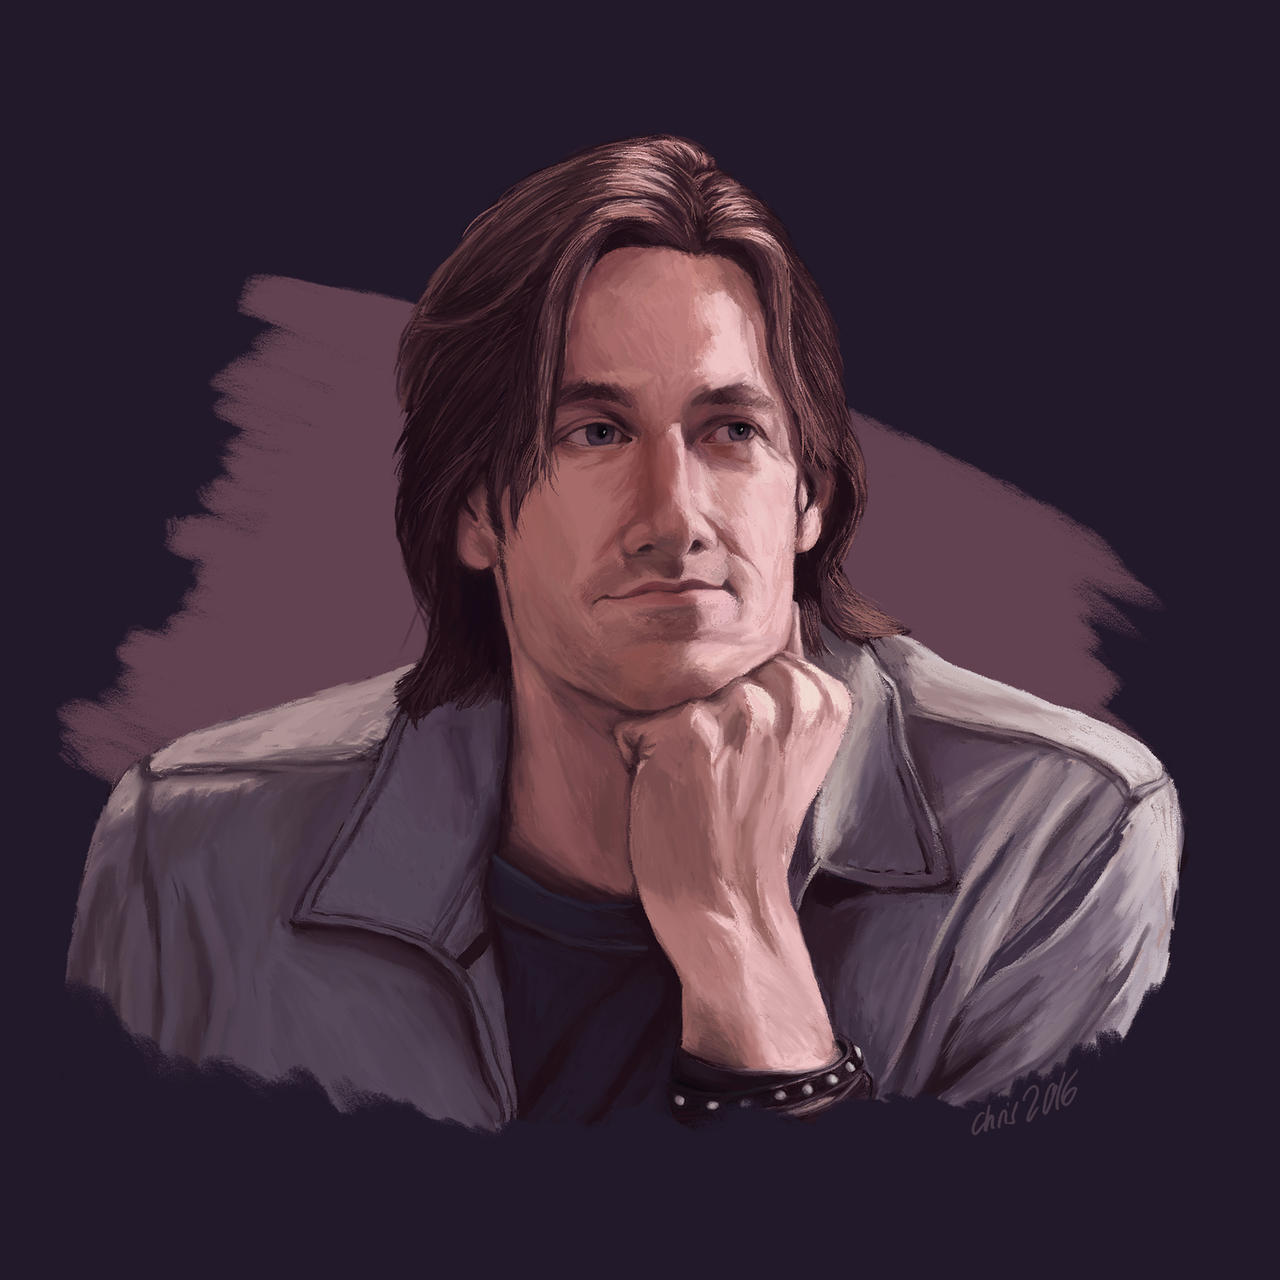 Portrait - Matthew Mercer by LadyOfTardis on DeviantArt